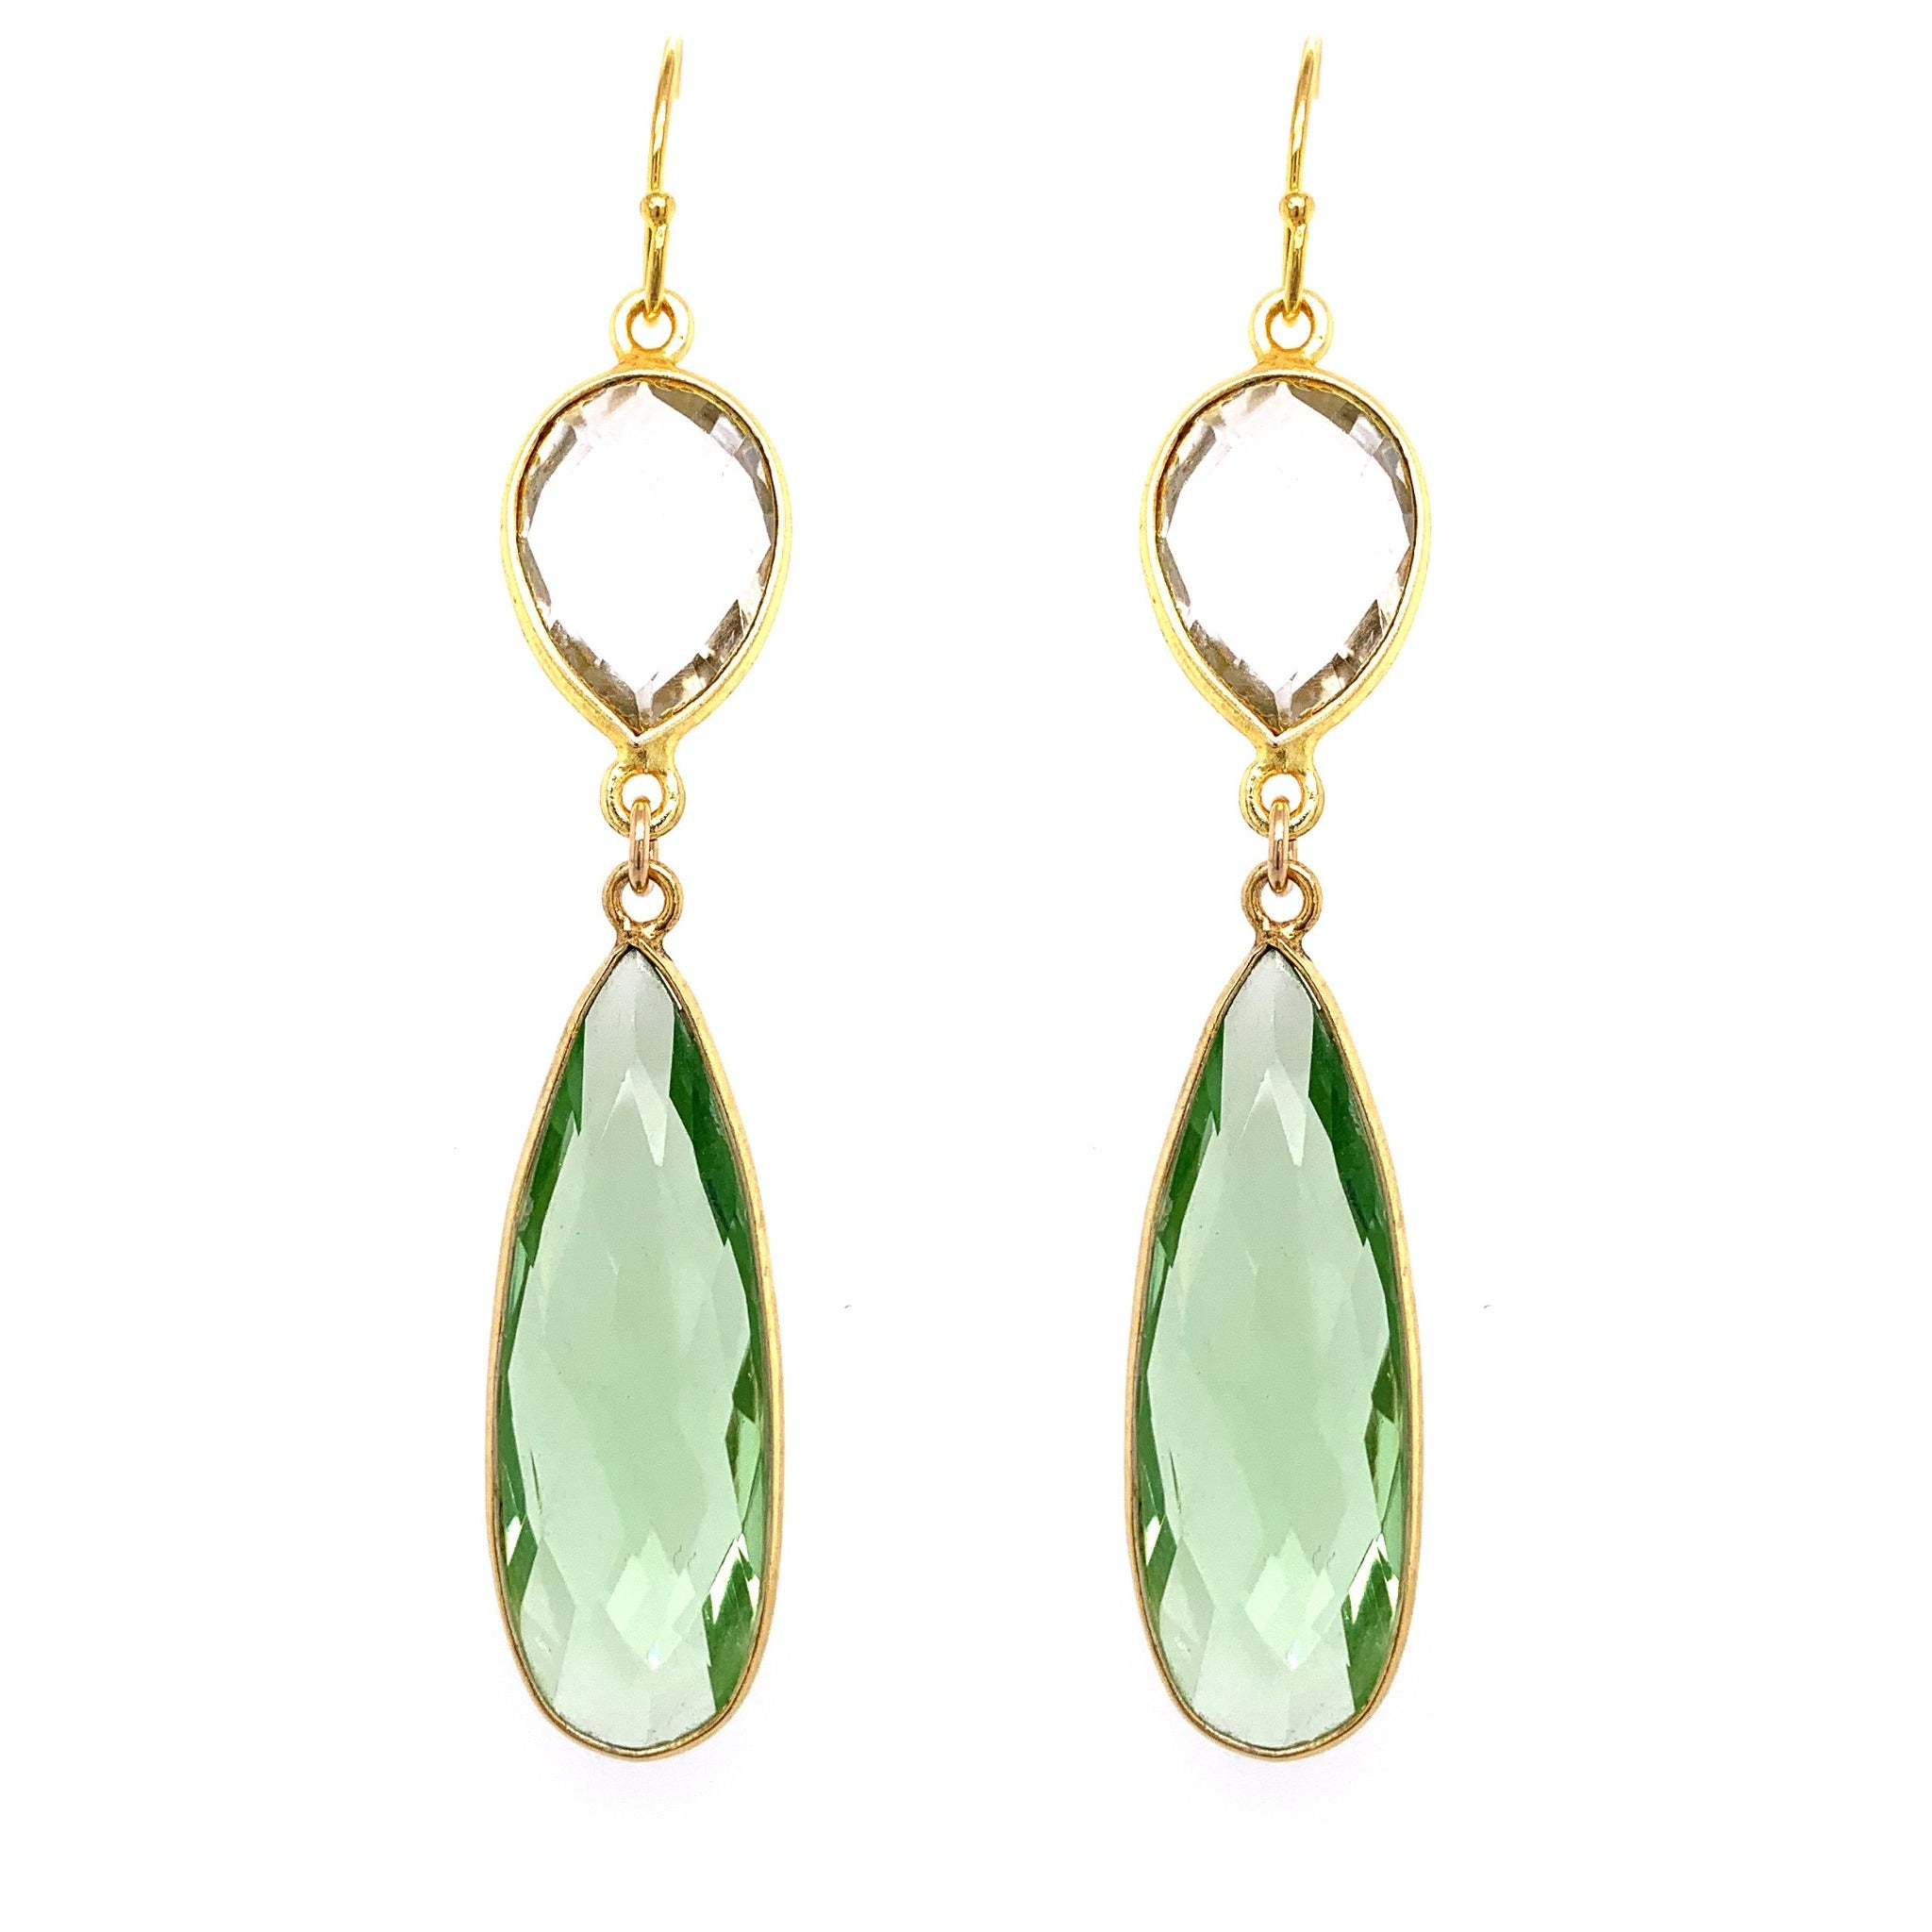 Crystal & Green Amethyst (Prasiolite) Regal Double Earring Drops, Gold